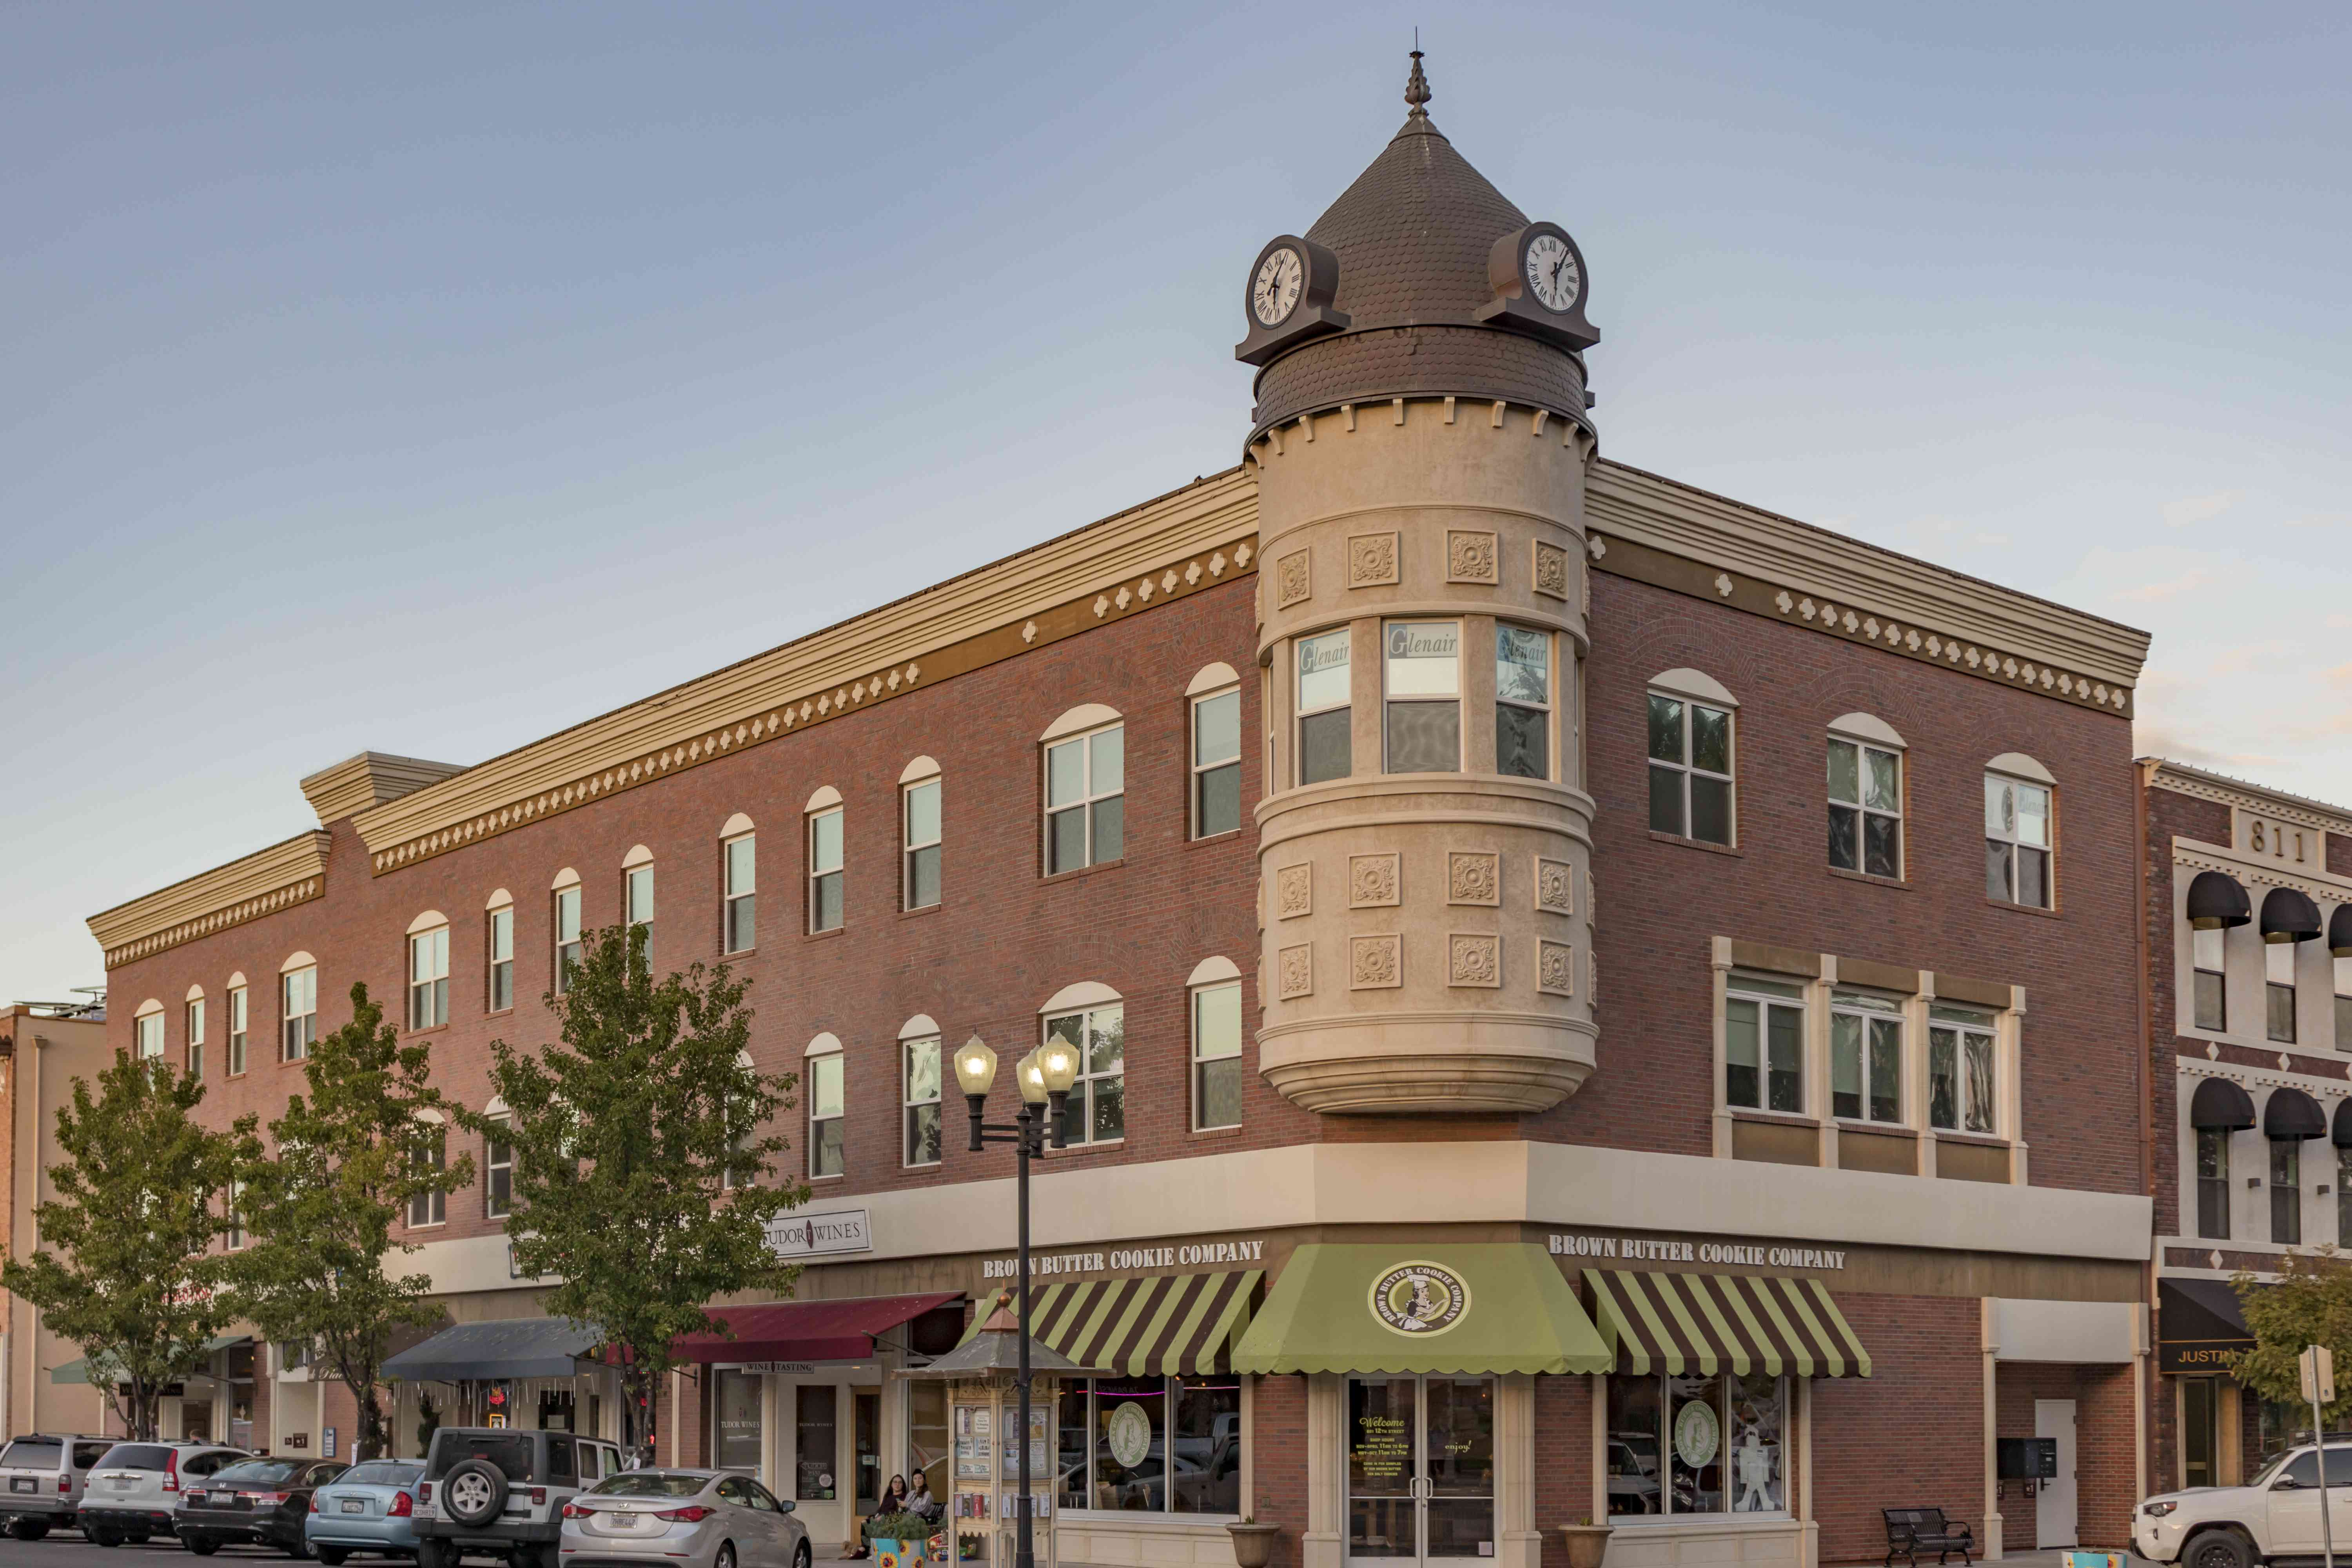 The iconic Acorn Building with a clocktower at the corner of 12th and Park Street in Downtown Paso Robles, California.